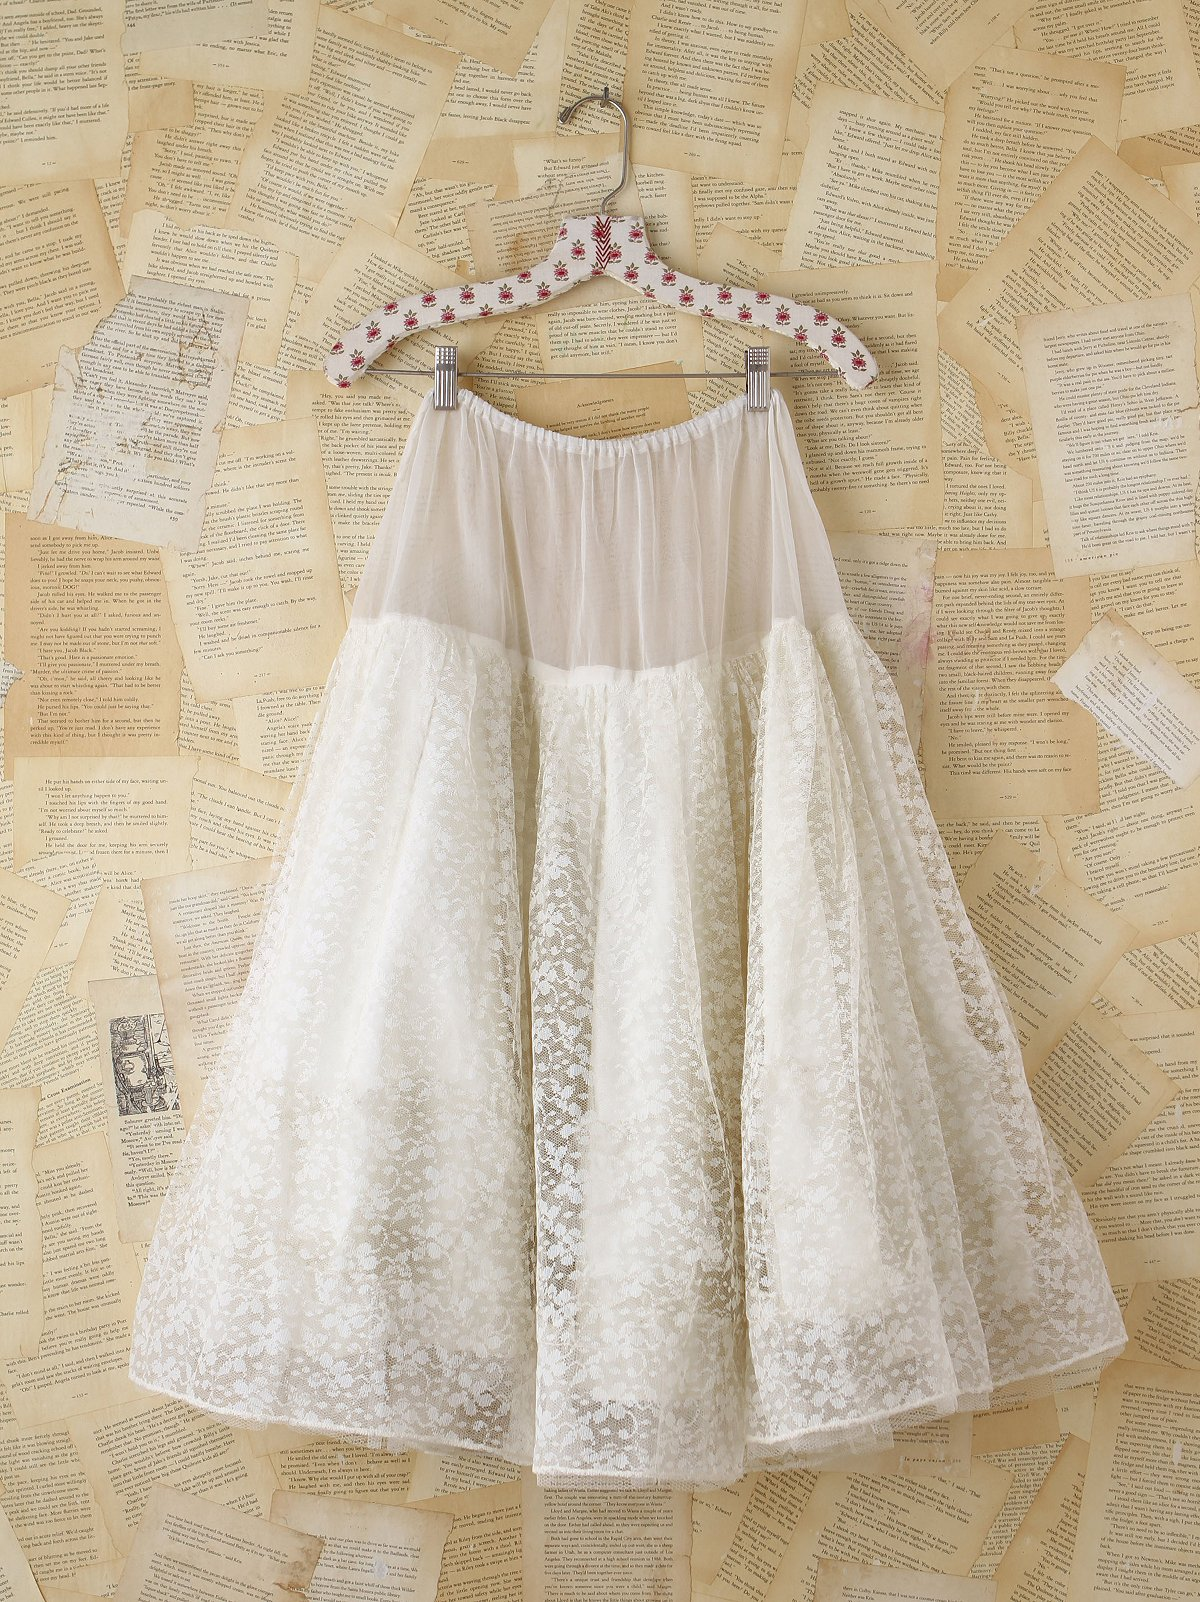 Vintage White Lace and Tulle Skirt